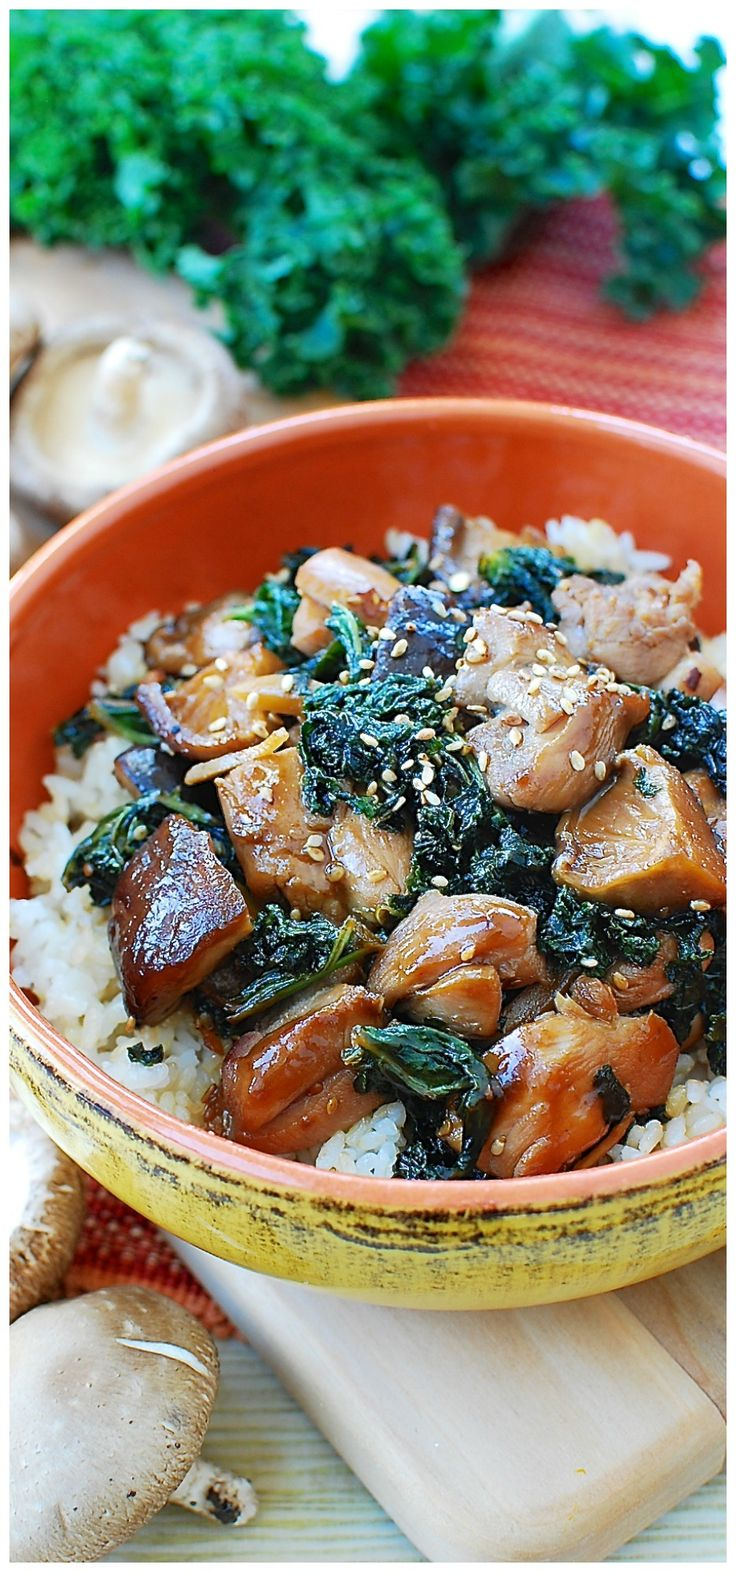 Stir-fried chicken and kale - The slightly sweet and savory sauce in this recipe…